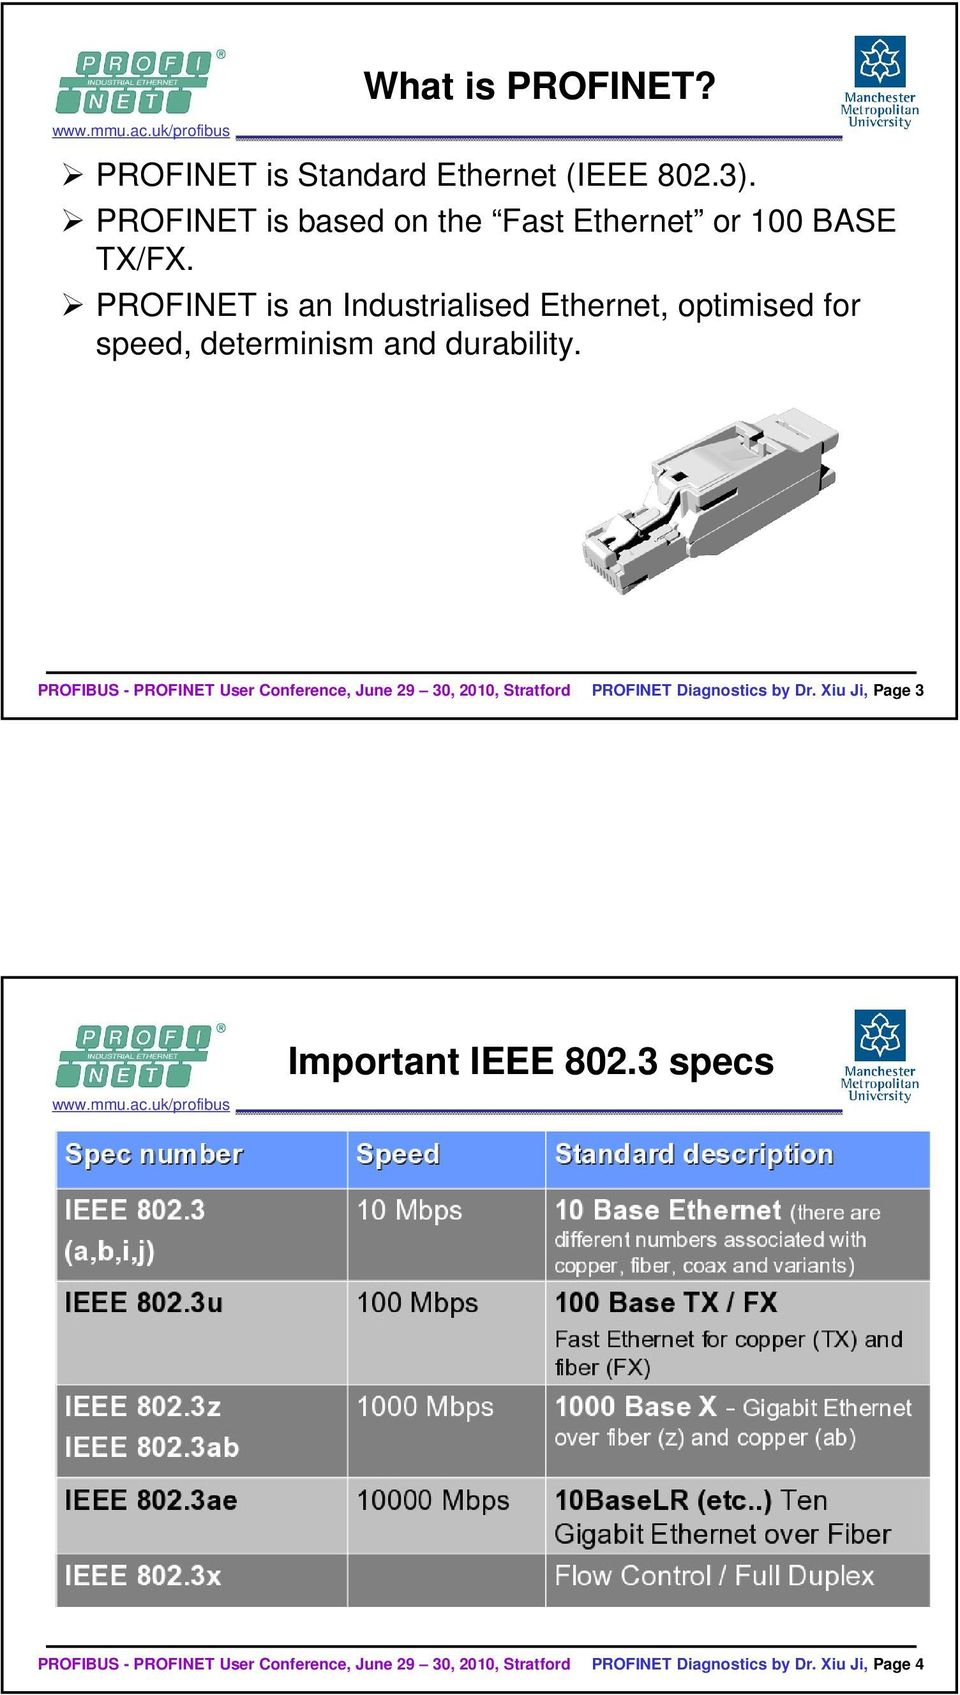 PROFINET is an Industrialised Ethernet, optimised for speed, determinism and durability.